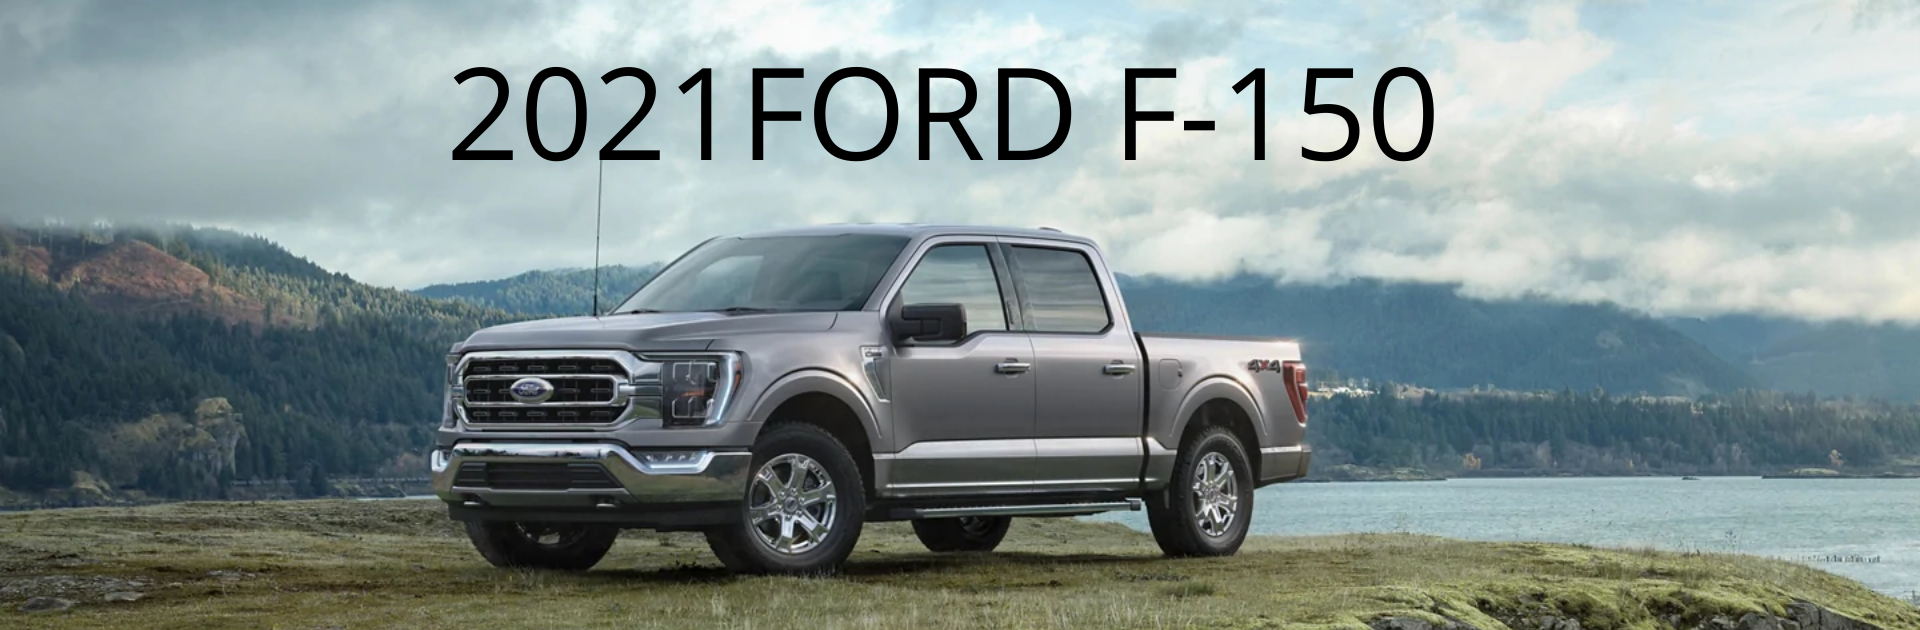 2021 F 150 Lifestyle Slider